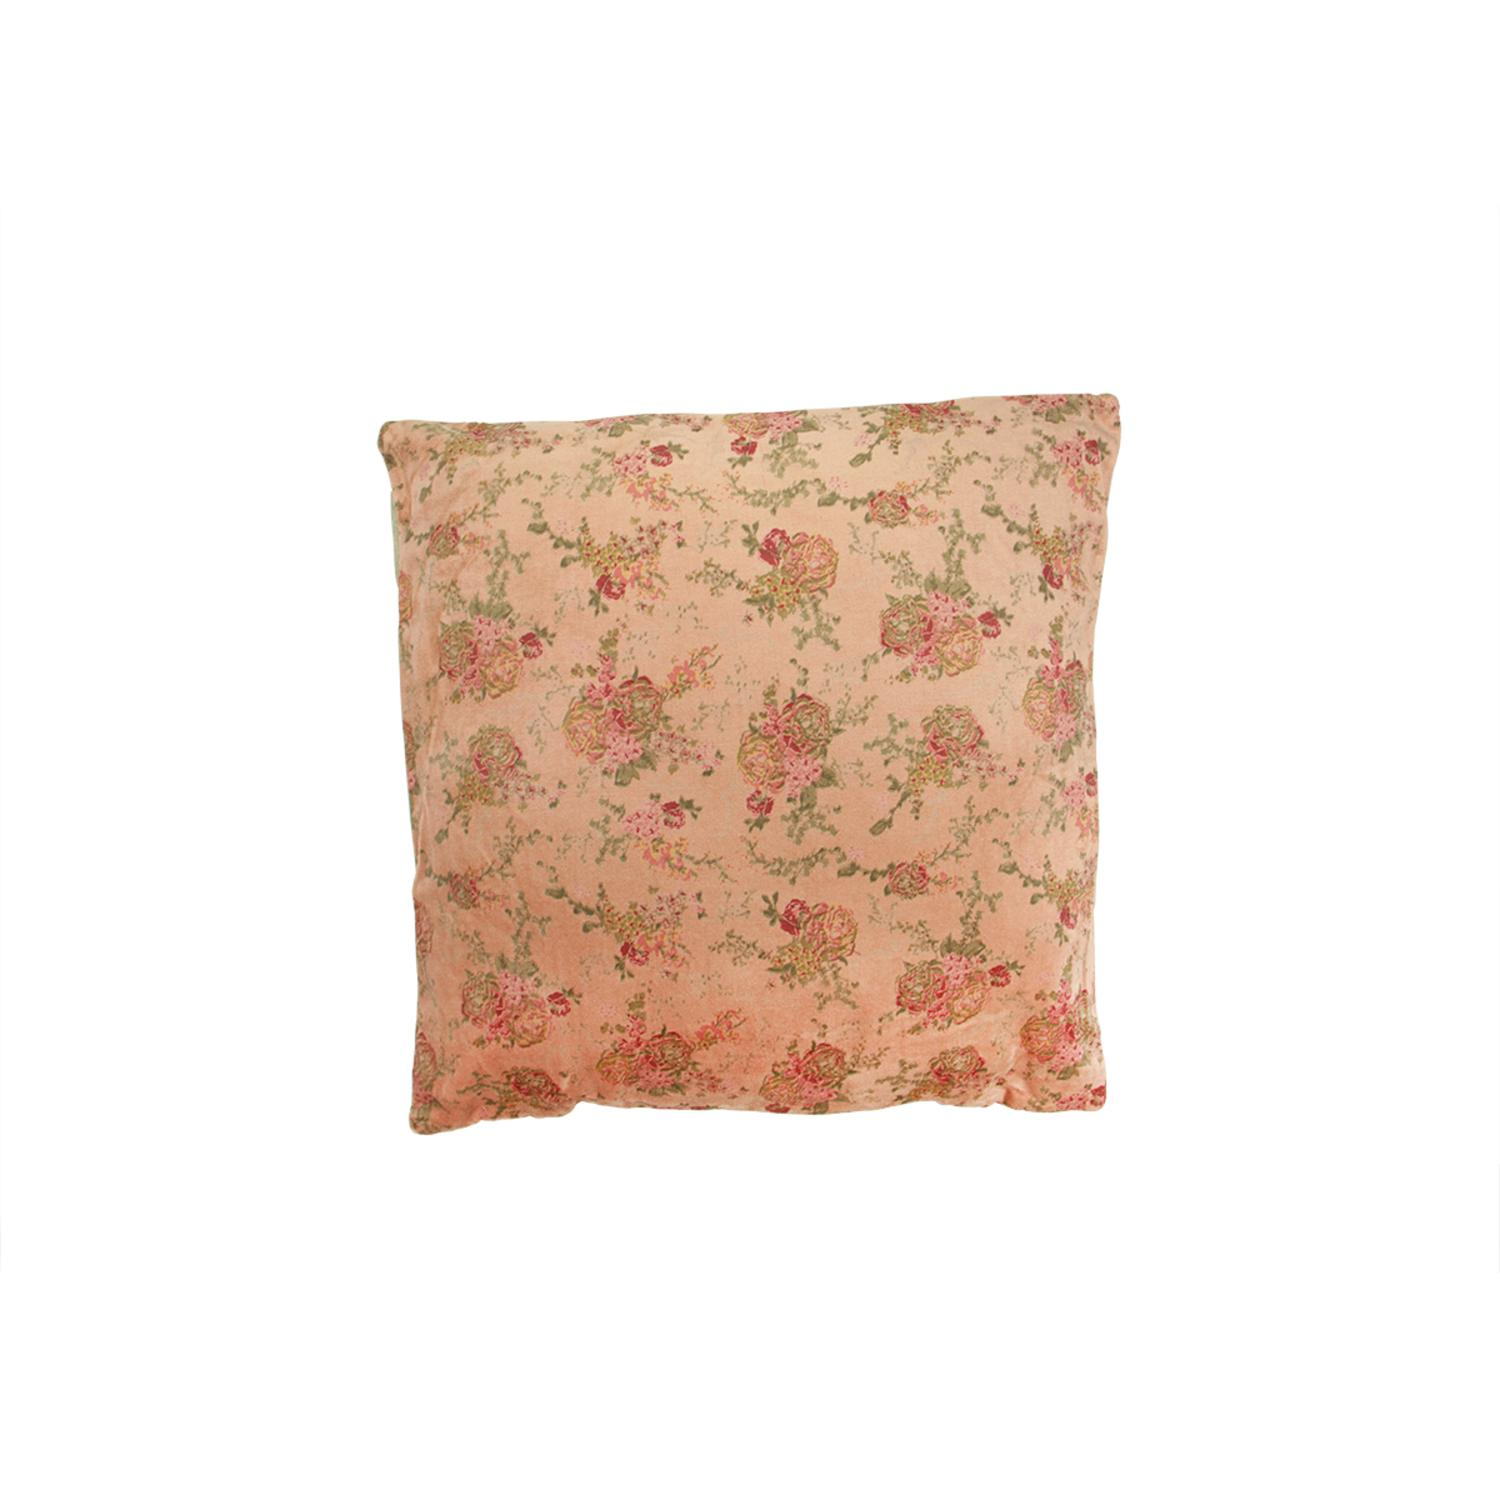 "15.75"" Vintage Rose Pink and Taupe Patterned Veleveteen Floral Throw Pillow"